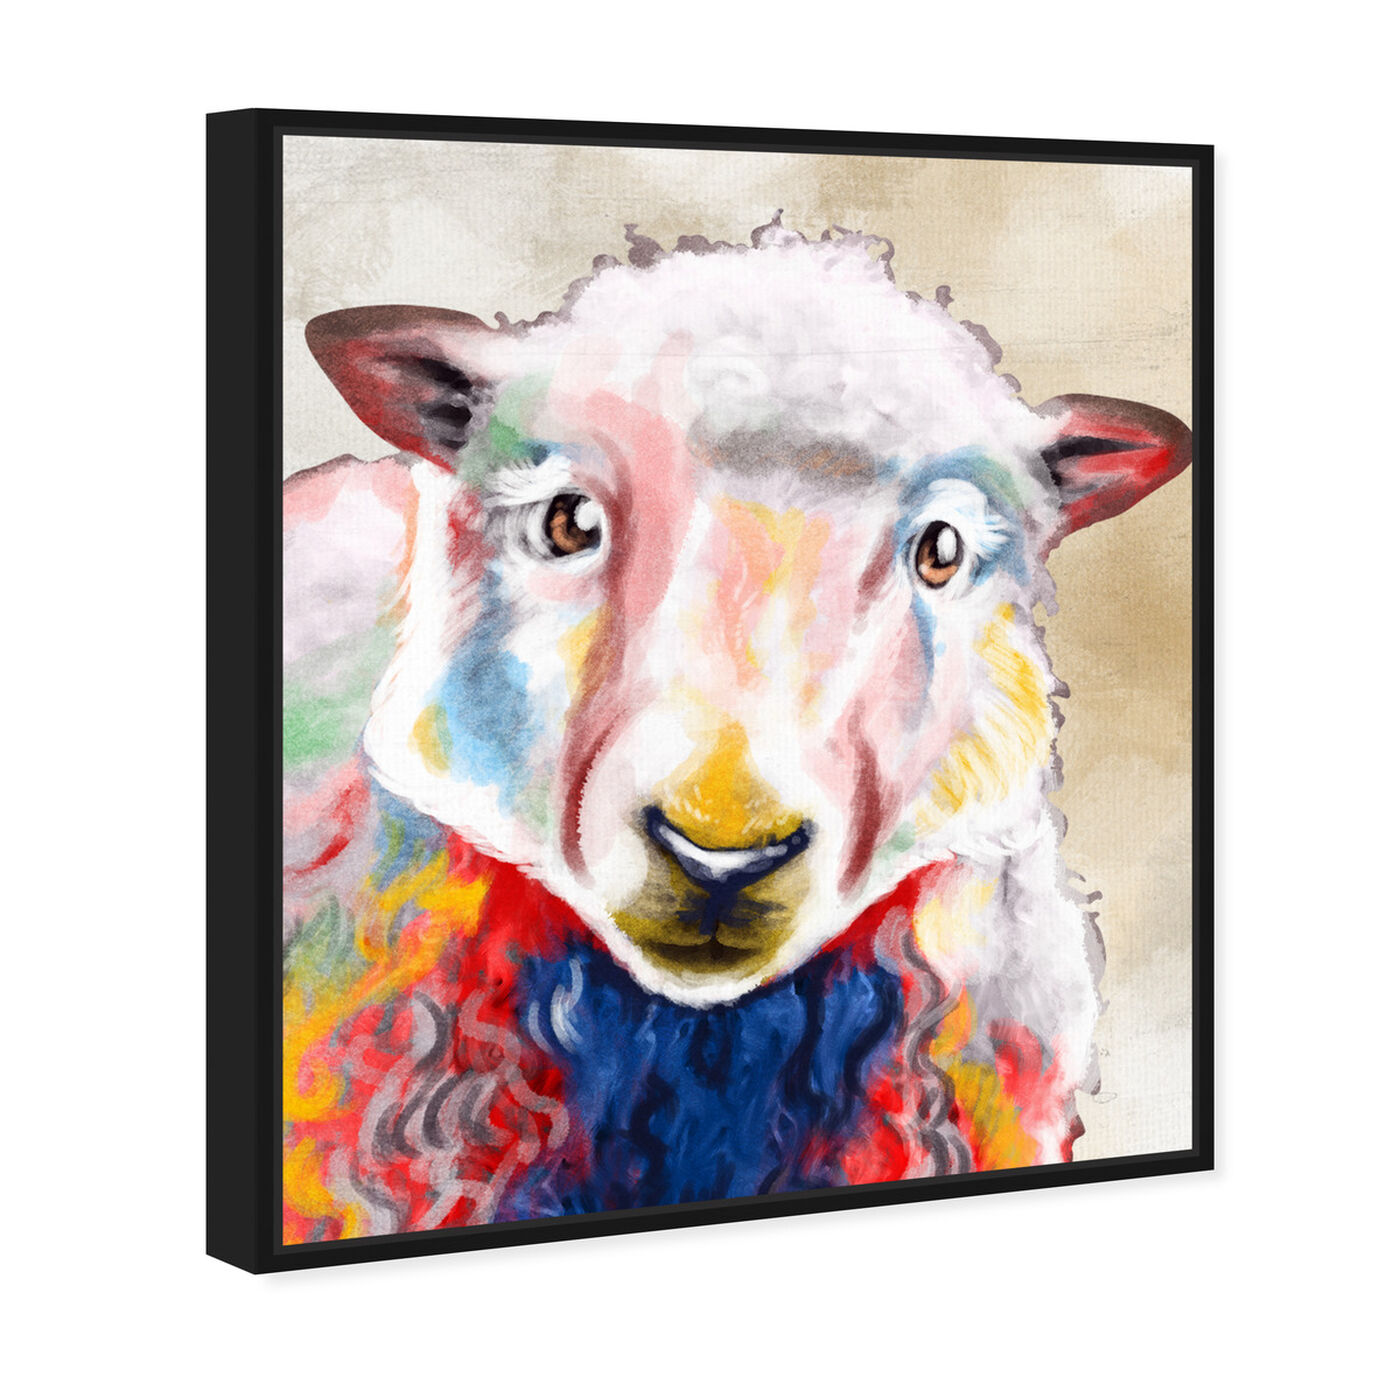 Angled view of Color Splash Sheep featuring animals and farm animals art.